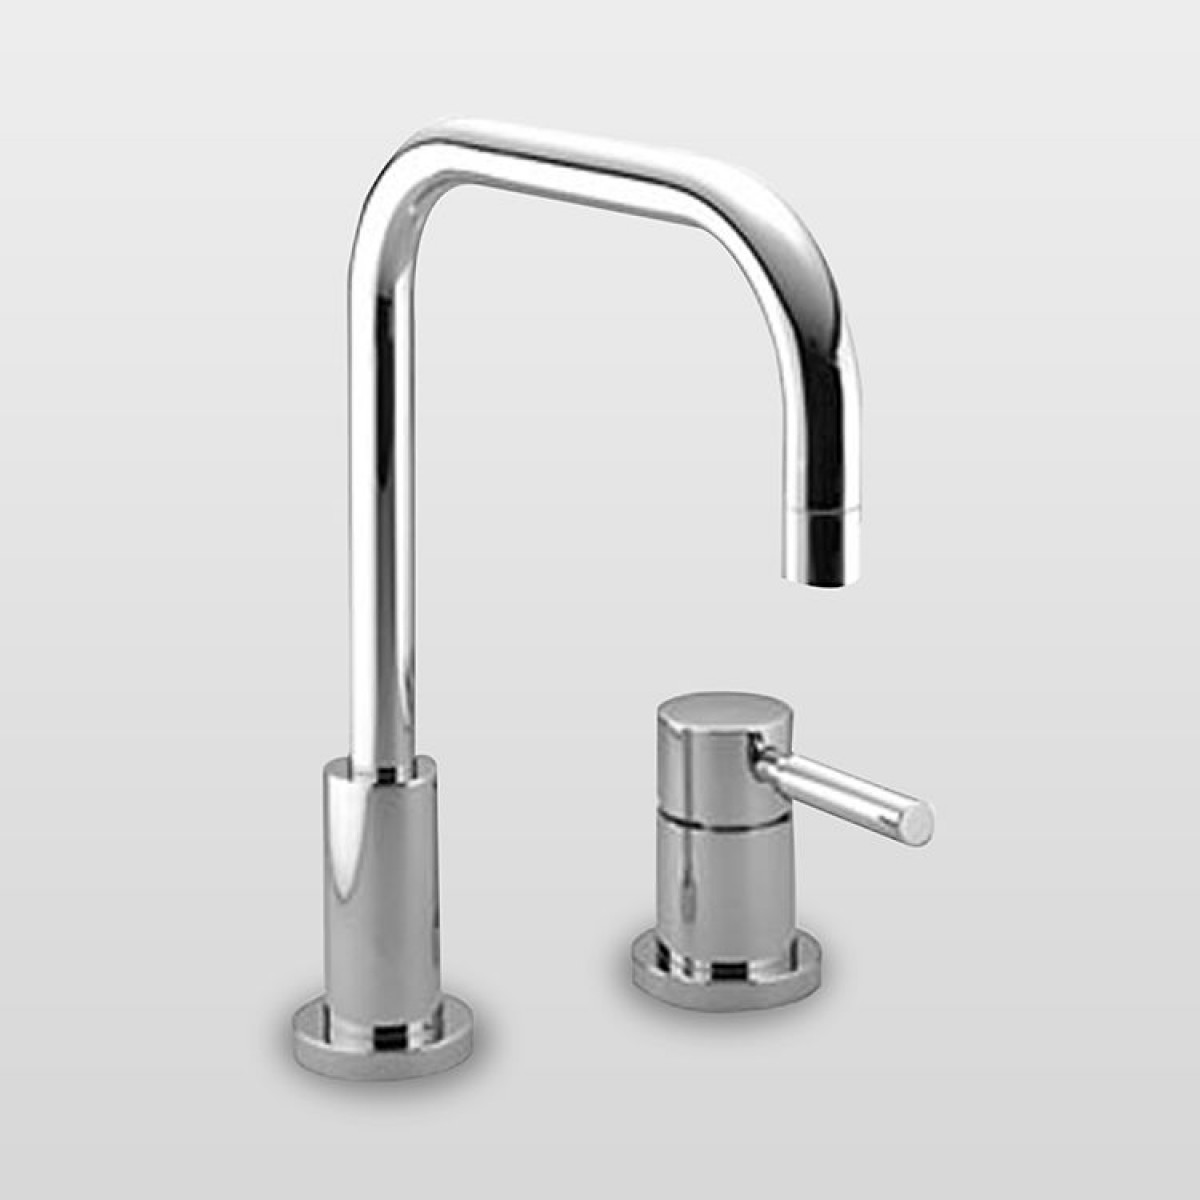 Kitchen Dornbracht Shower Dornbracht Kitchen Faucet